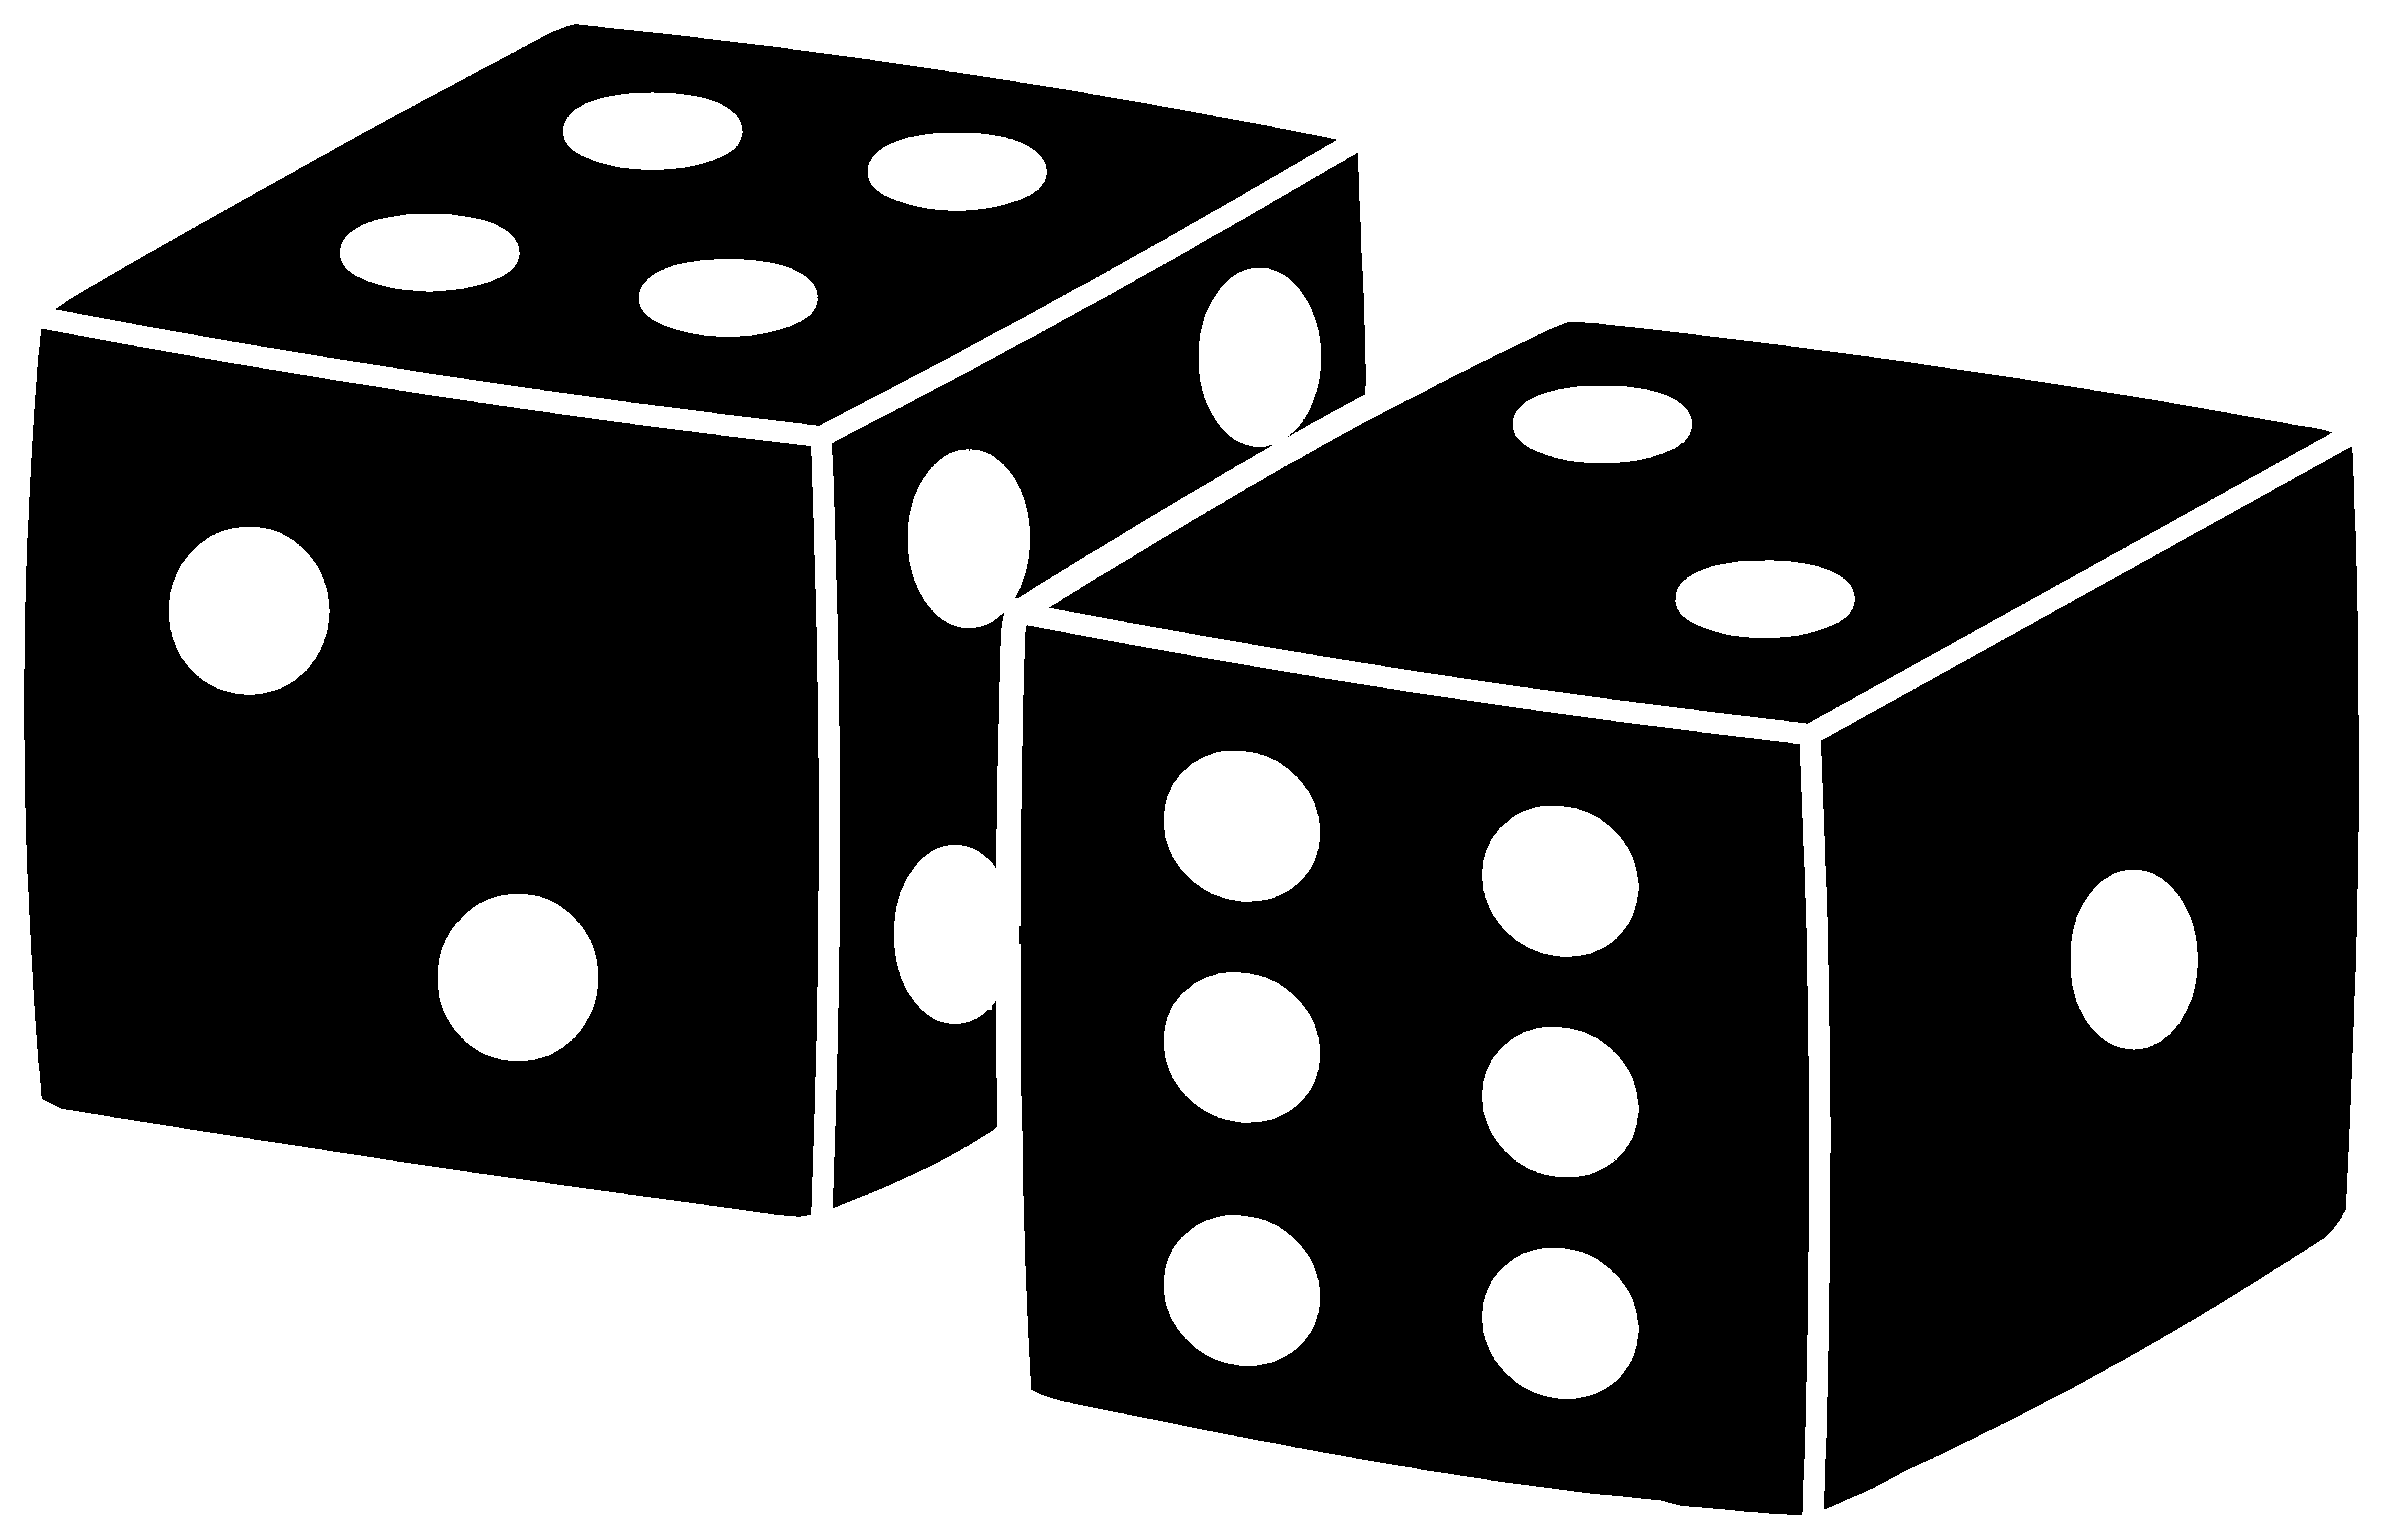 svg freeuse library Dice svg silhouette. Black playing design free